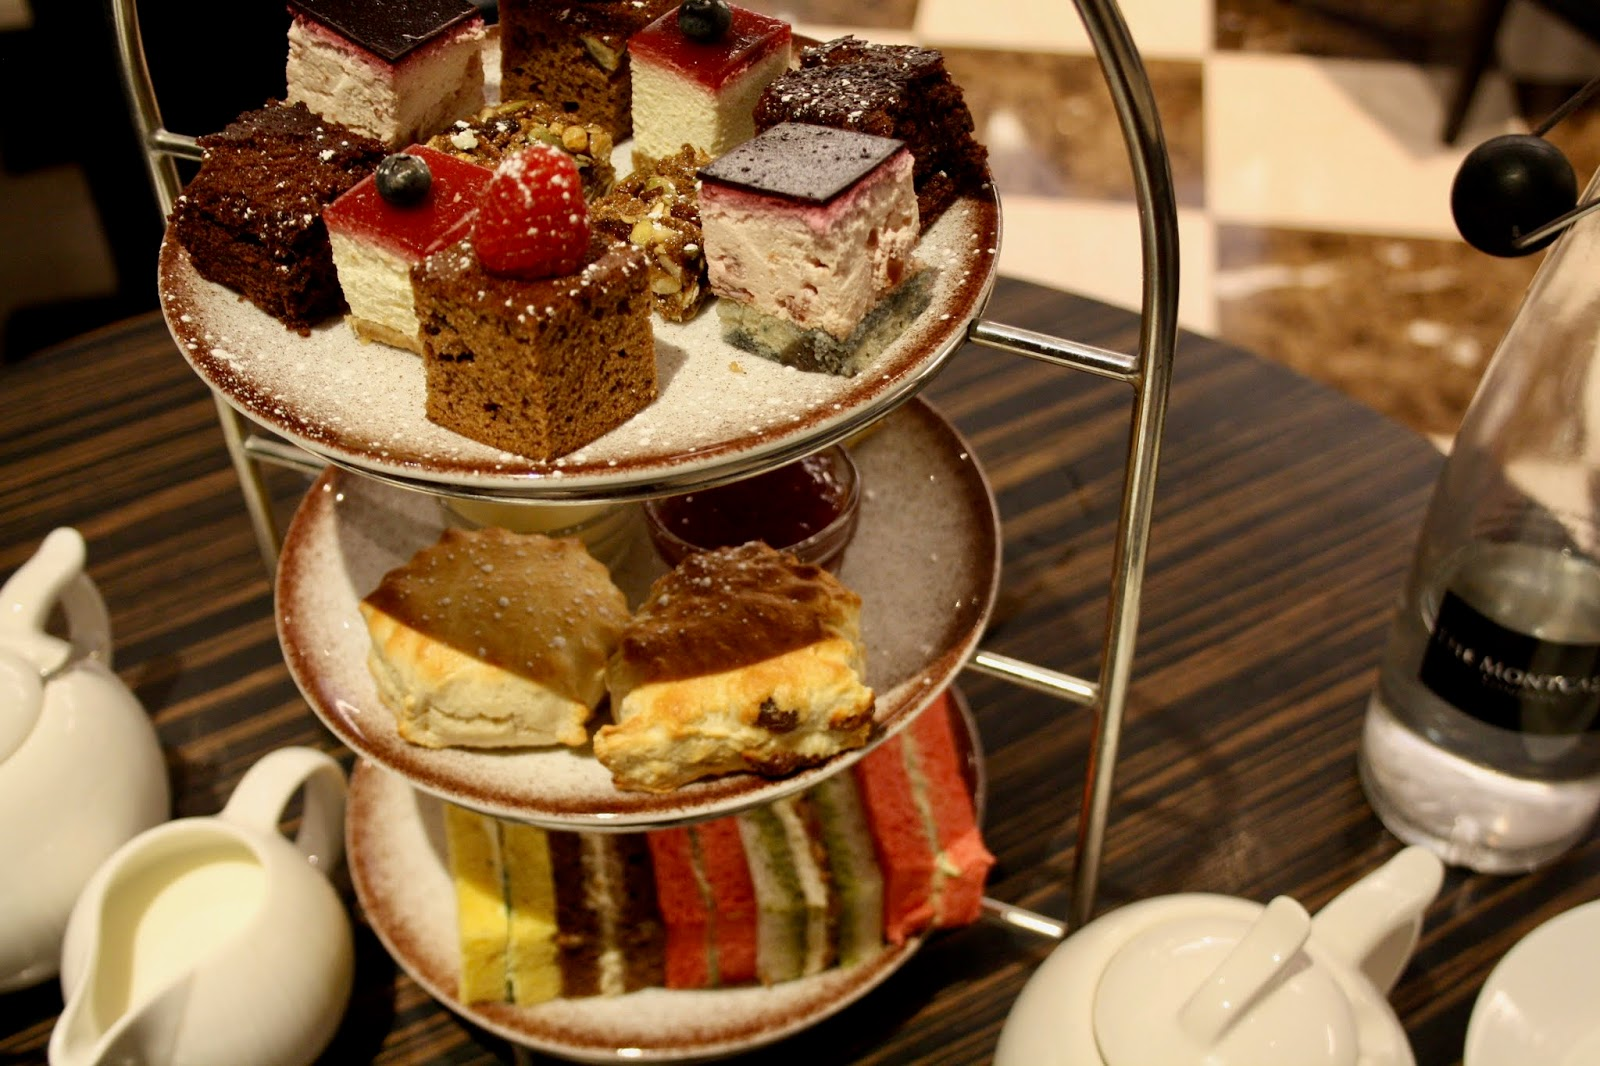 Tier of afternoon tea including sandwiches, scones, and cakes